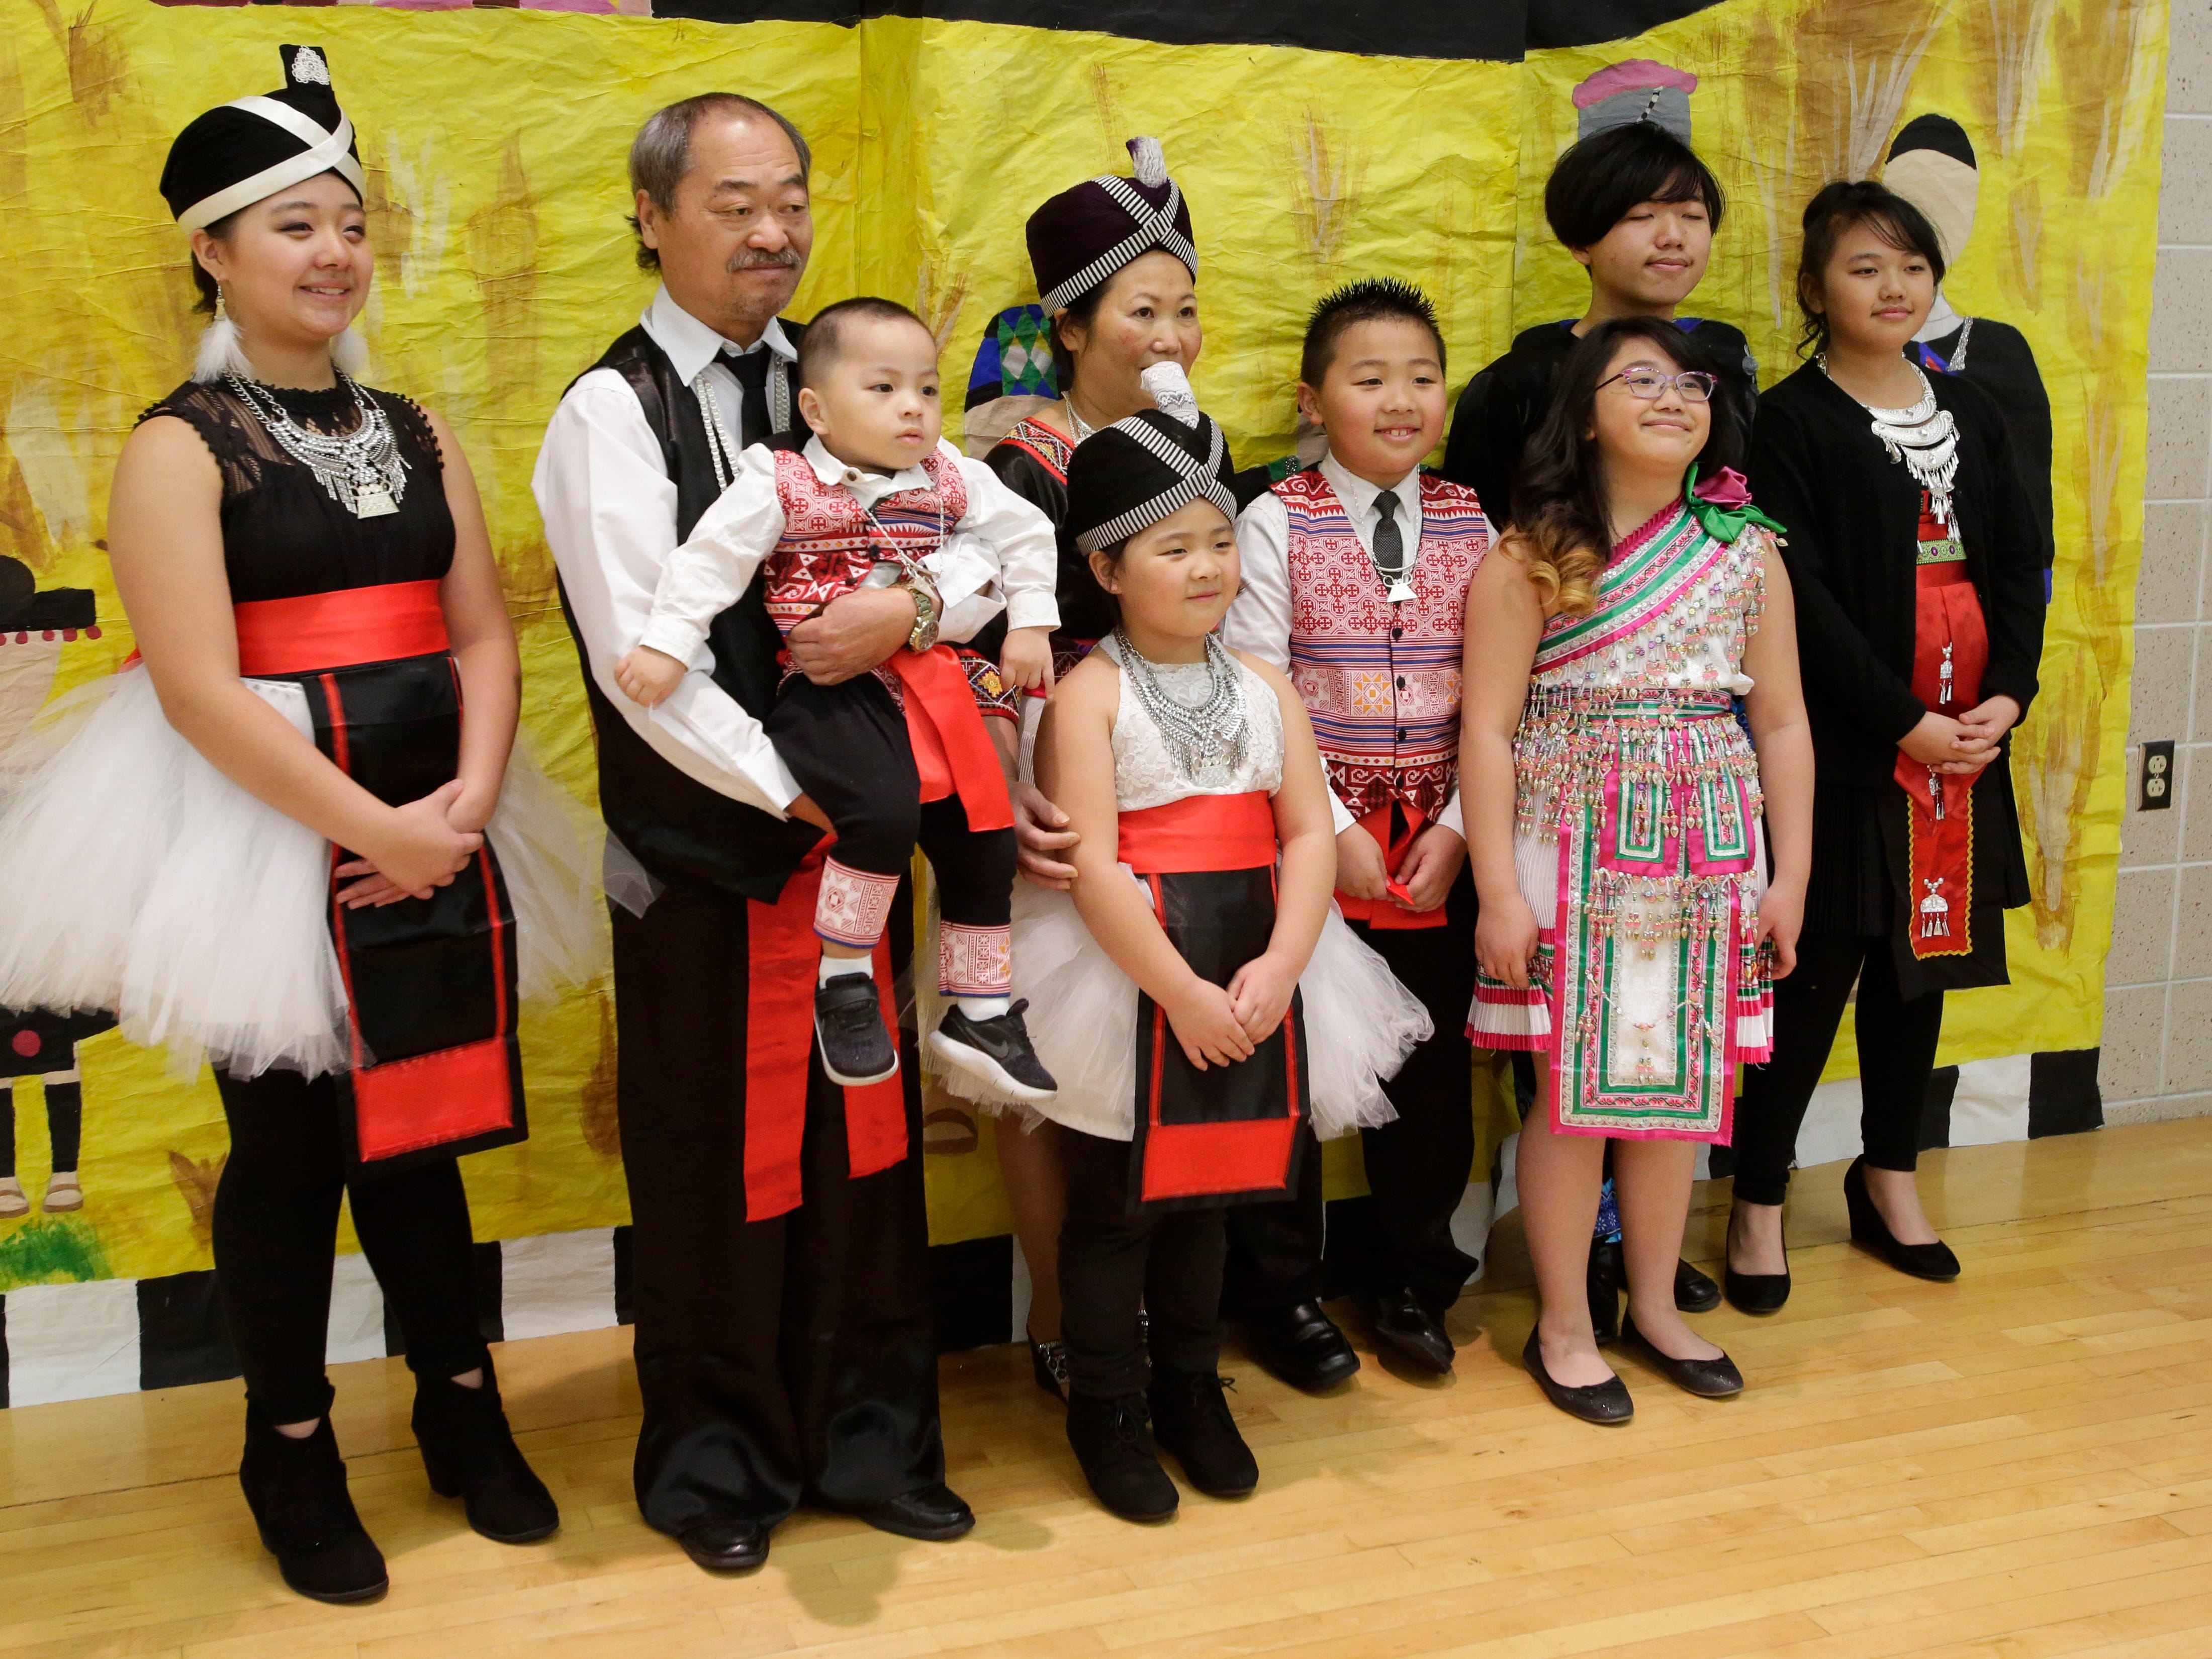 A Hmong family poses for cameras at the Hmong New Year observance at Shebygan North High School, Friday, November 23, 2018, in Sheboygan, Wis.